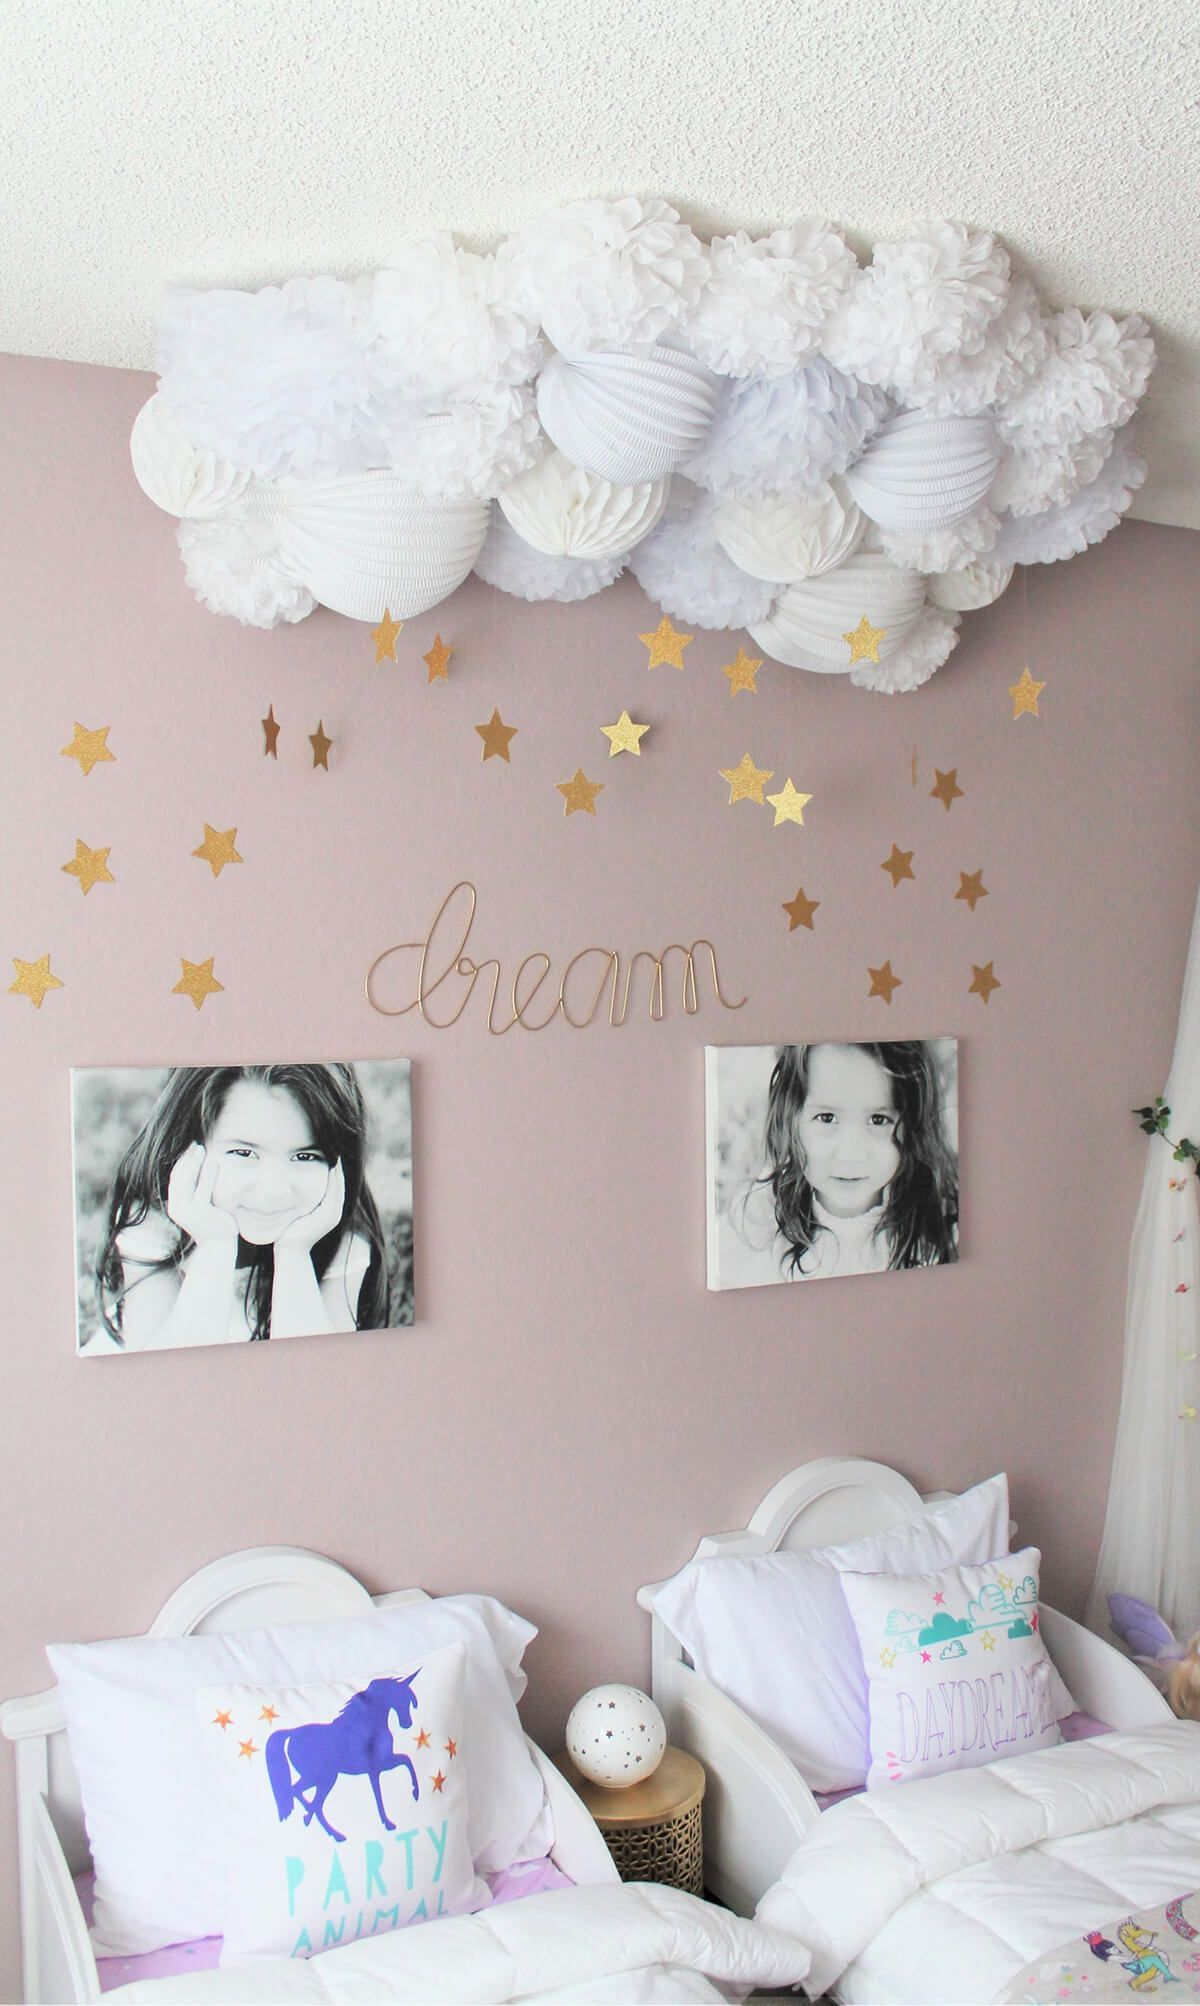 Unicorn Decor Items To Bring Rainbow Magic To Kids' Room images